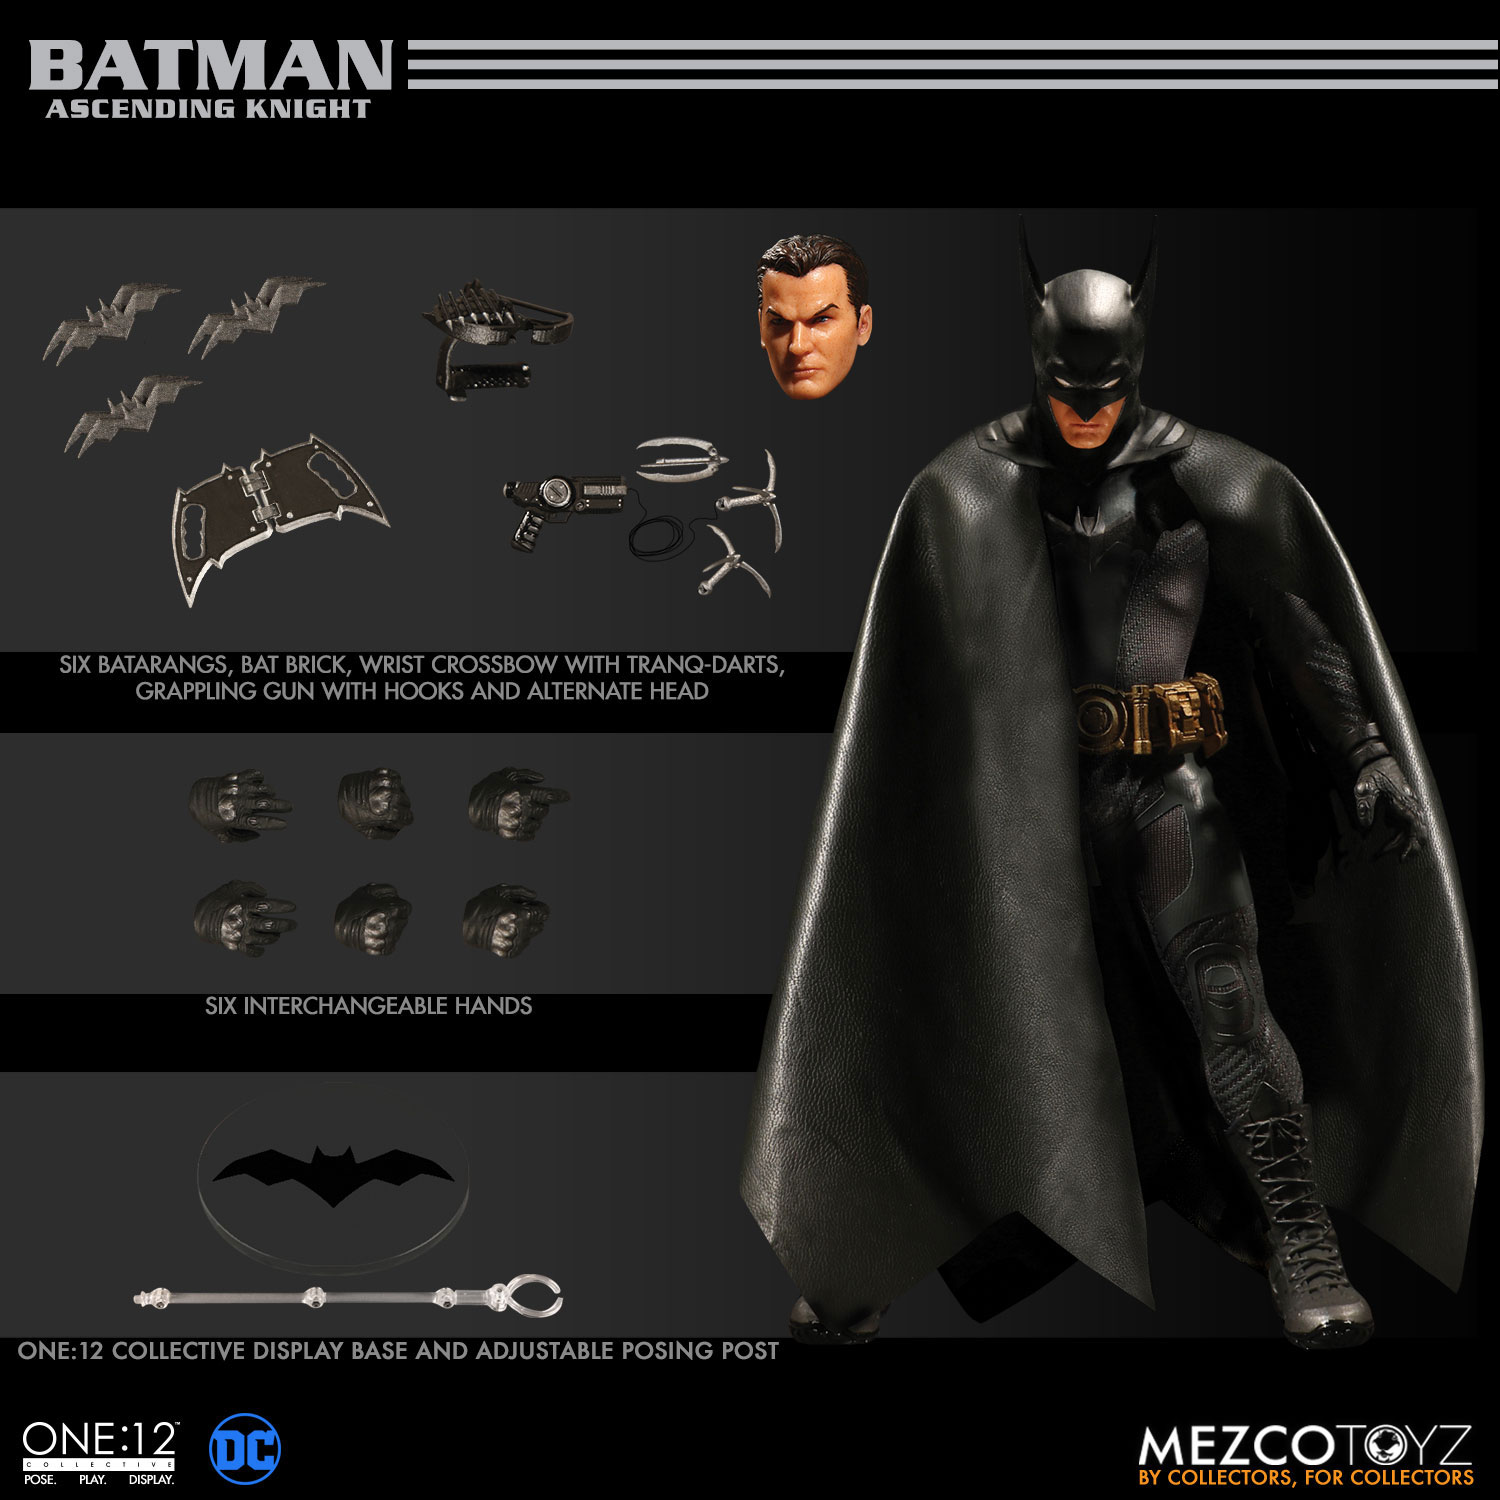 batman-ascending-knight-action-figure-mezco-toys-black-version-1